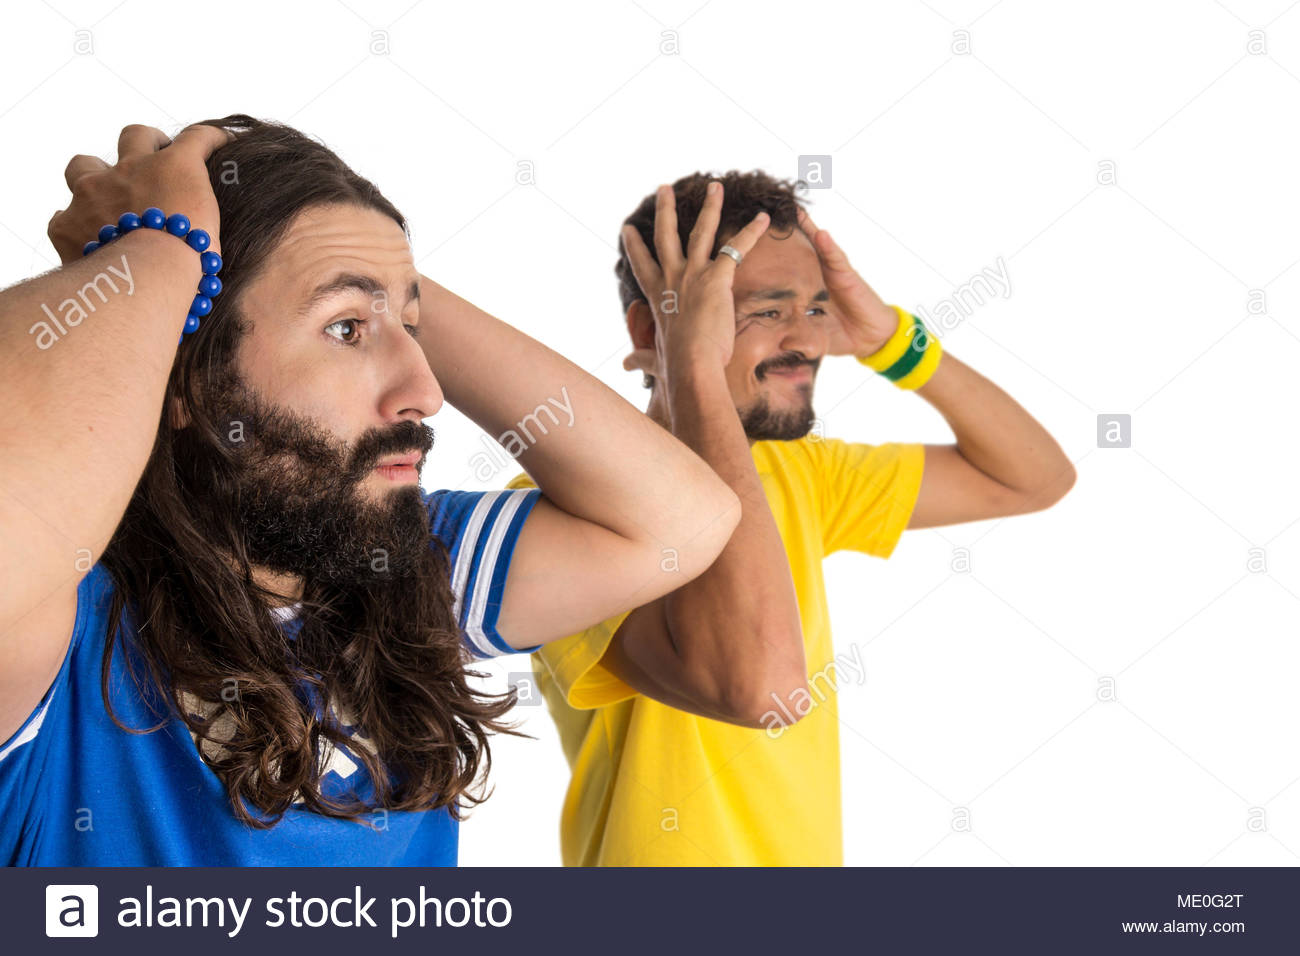 Worried, foul. Brazil supporters. Two brazilian friends celebrating on soccer / football match on white background. Brazil colors. - Stock Image